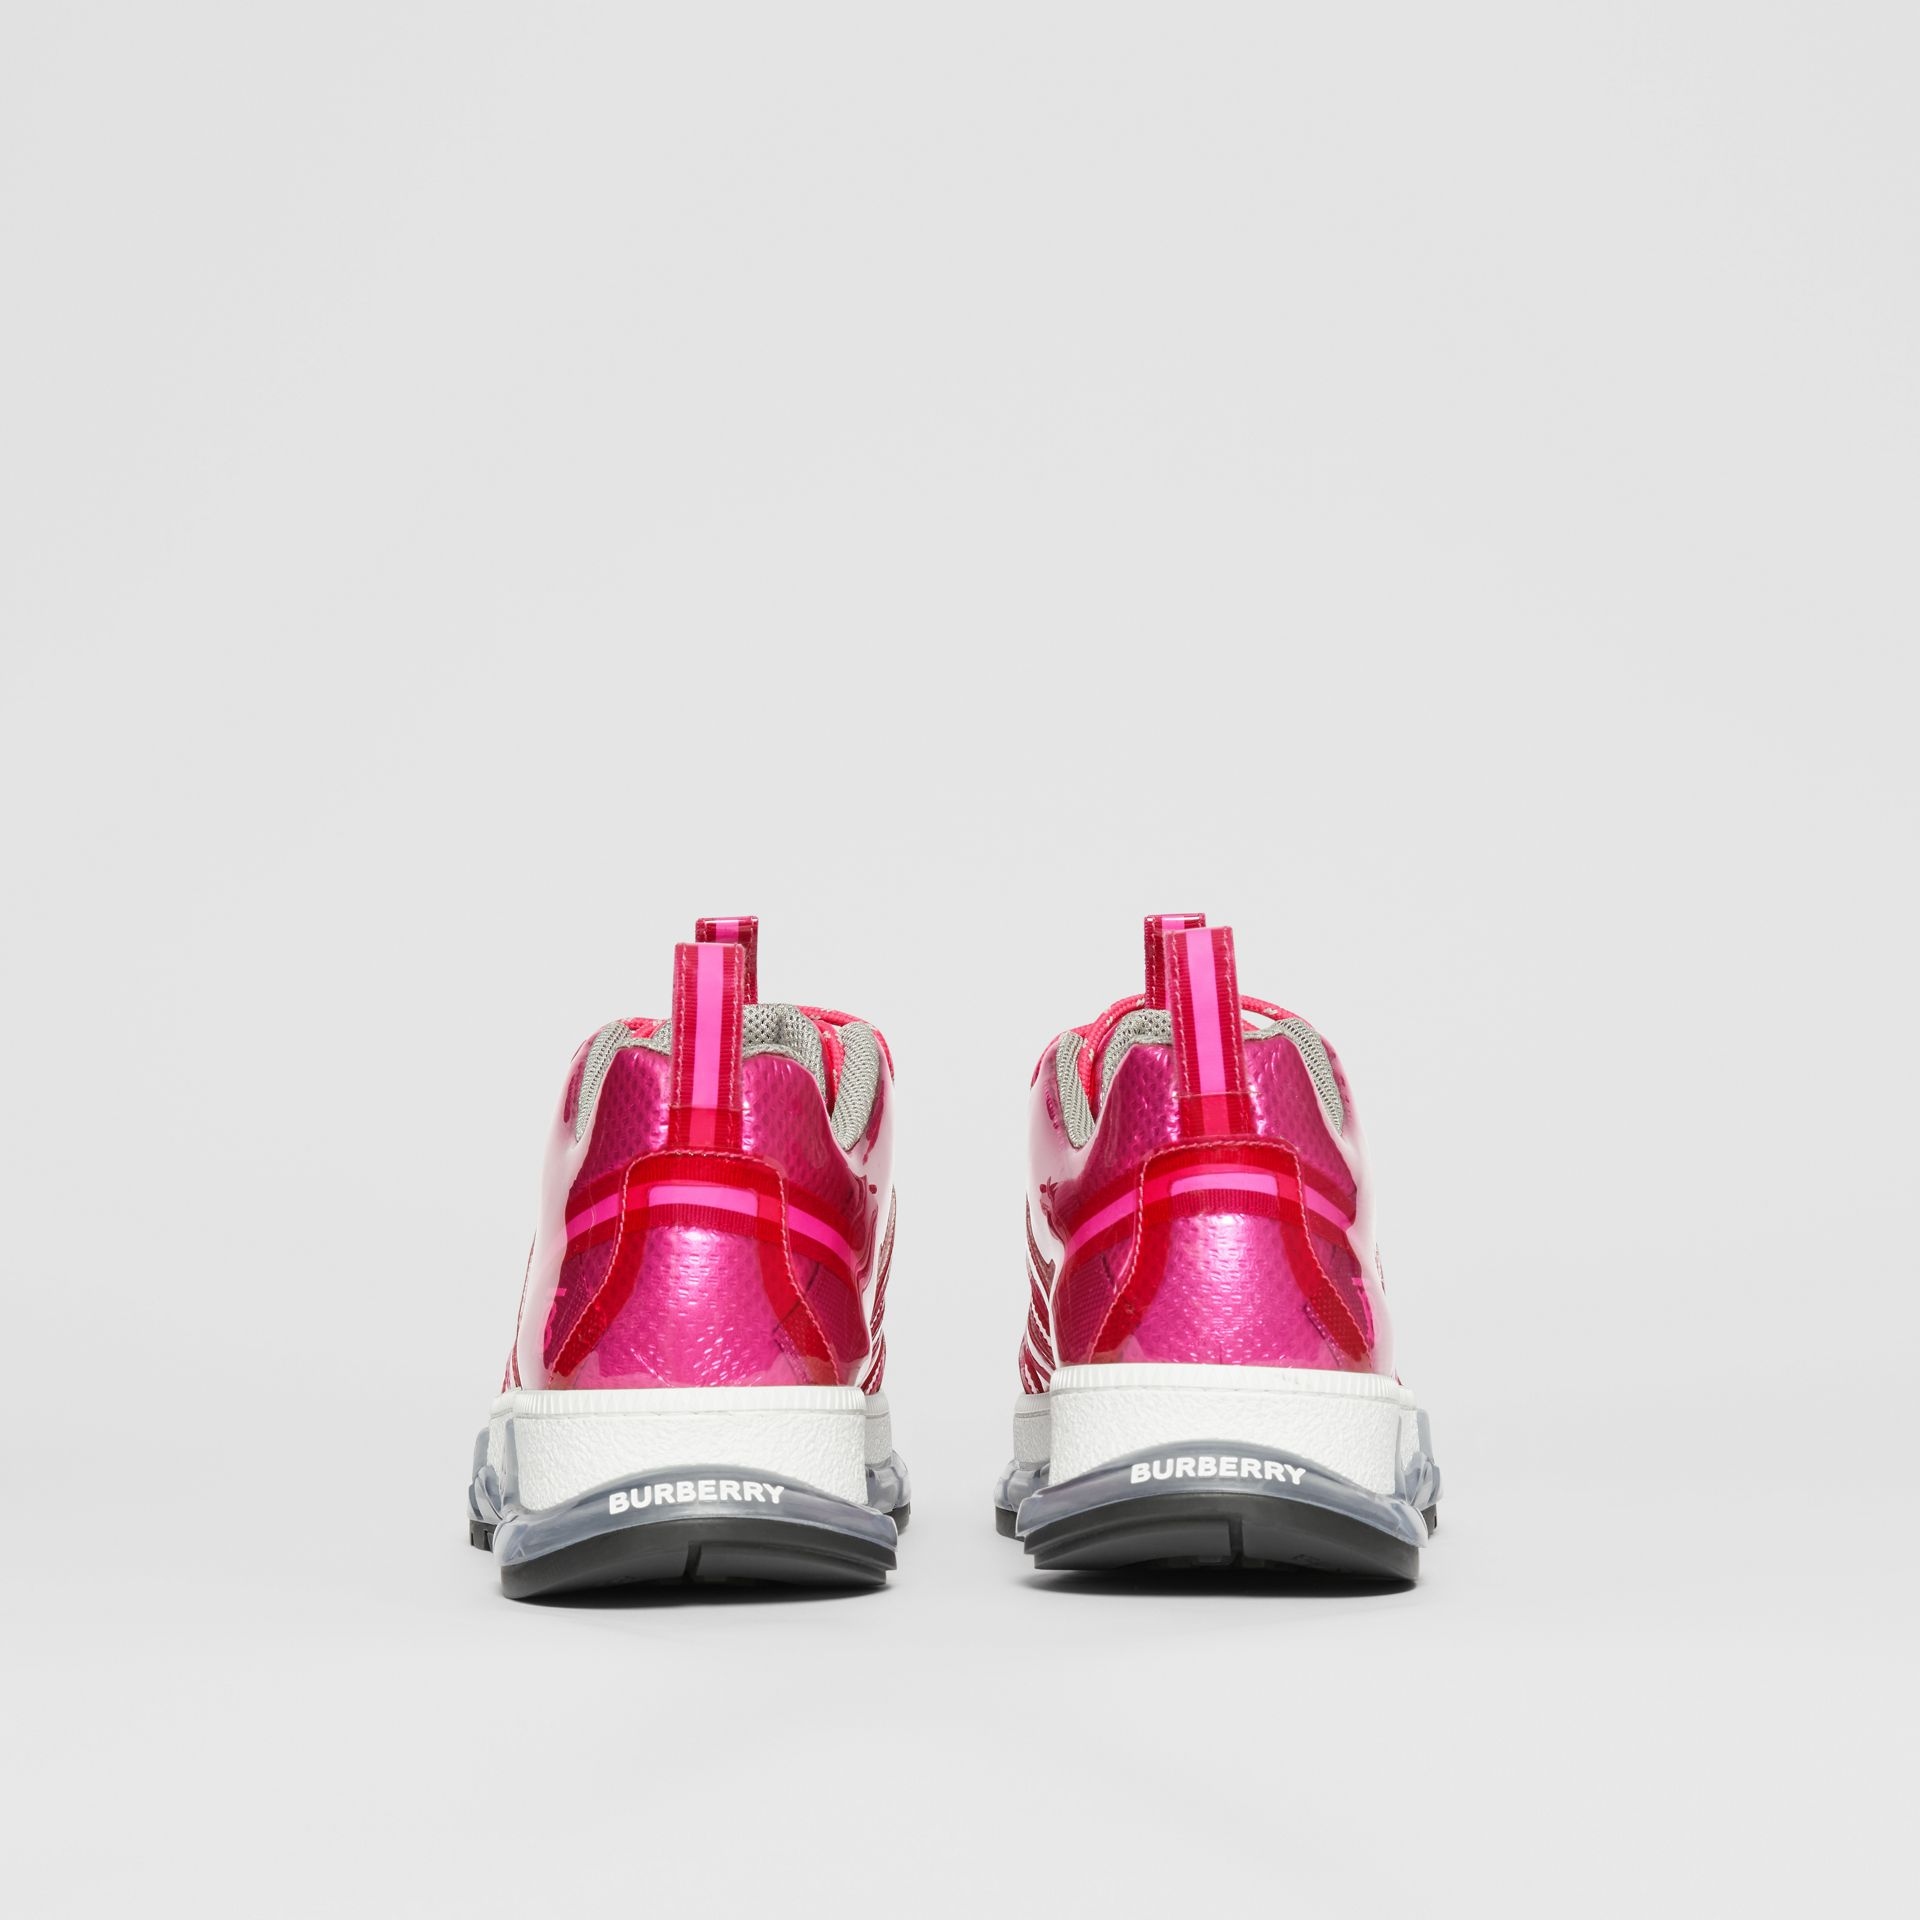 Sneakers Union en vinyle et nylon (Fuchsia) - Homme | Burberry - photo de la galerie 3